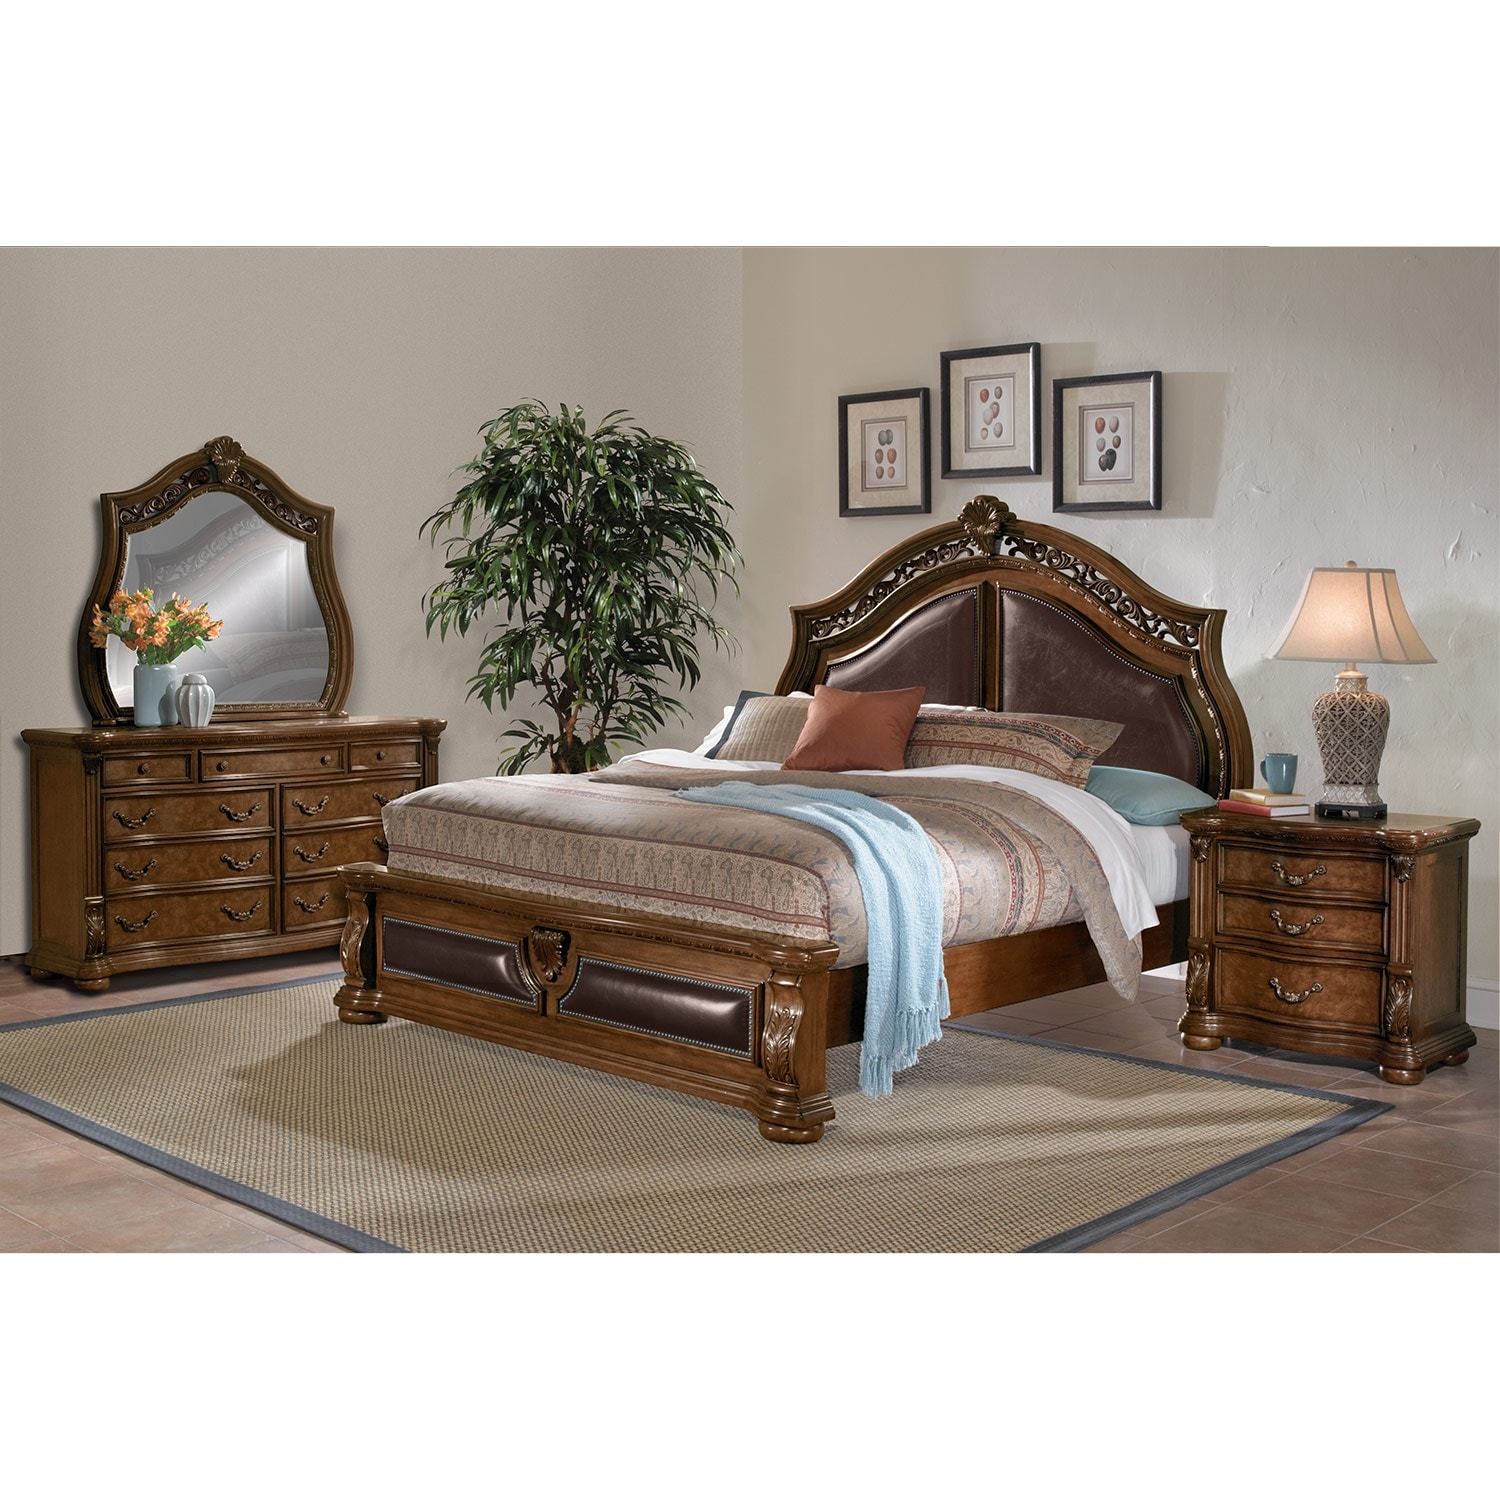 Morocco 6 piece king bedroom set pecan american for Bedroom furniture packages